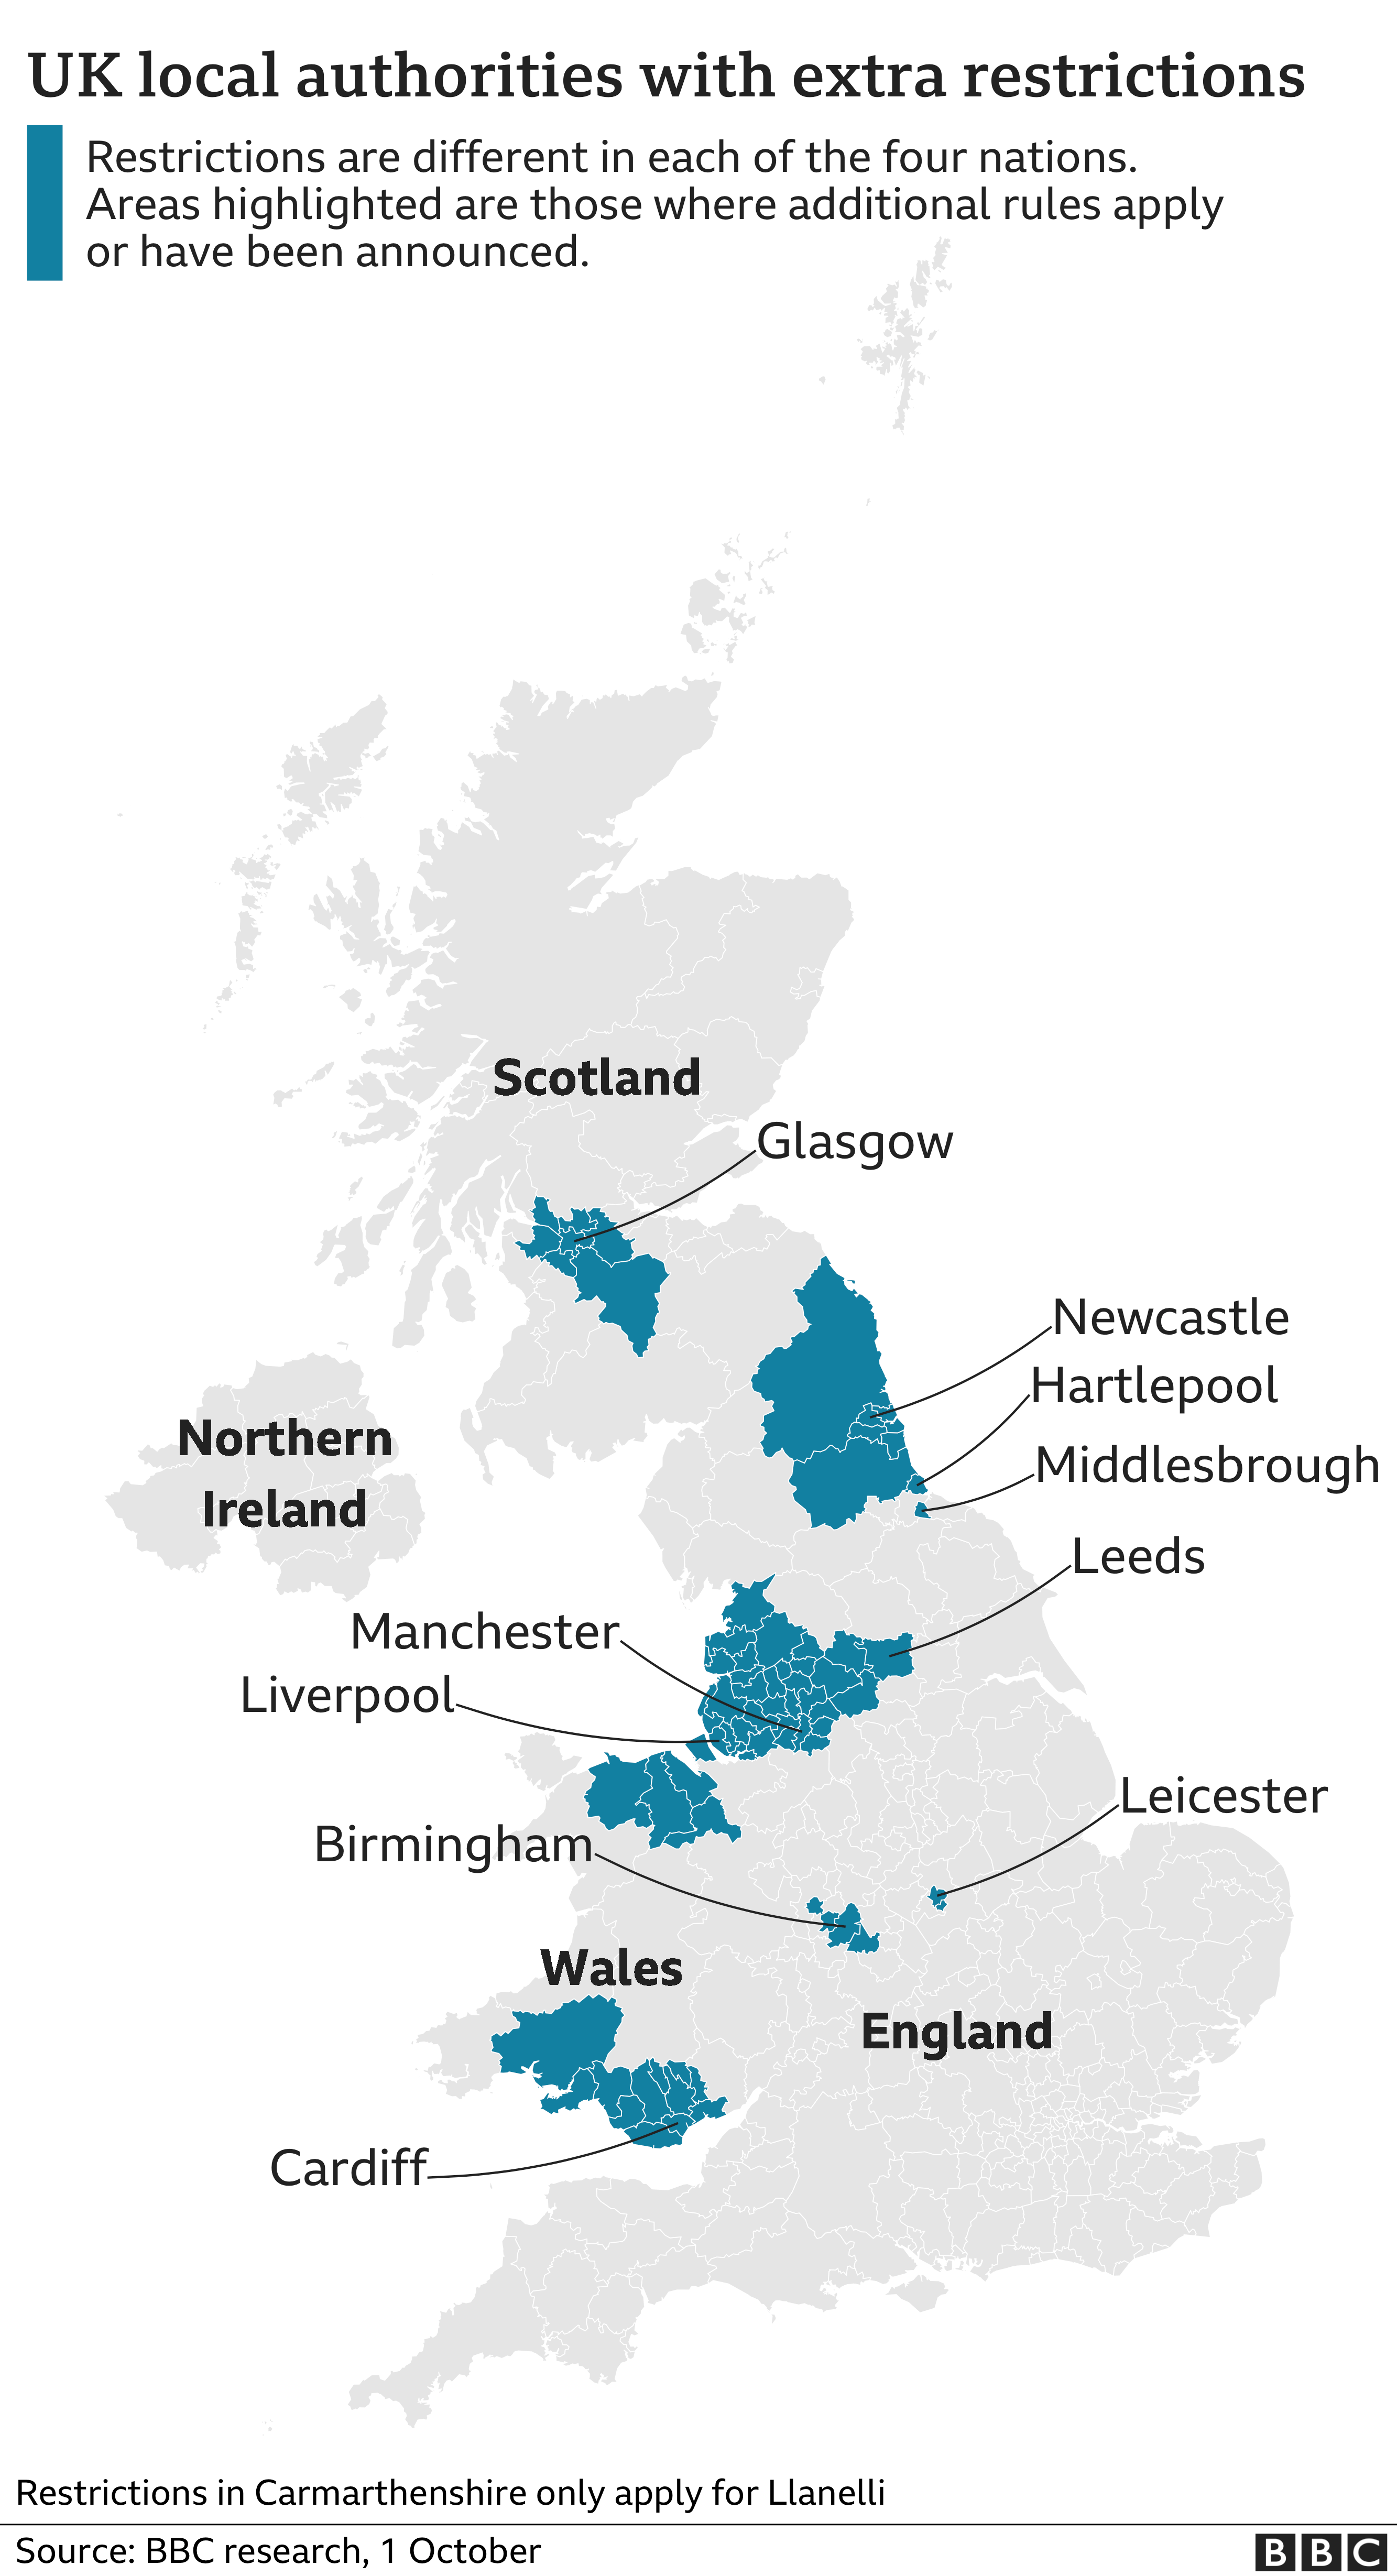 Map showing local authorities with extra restrictions